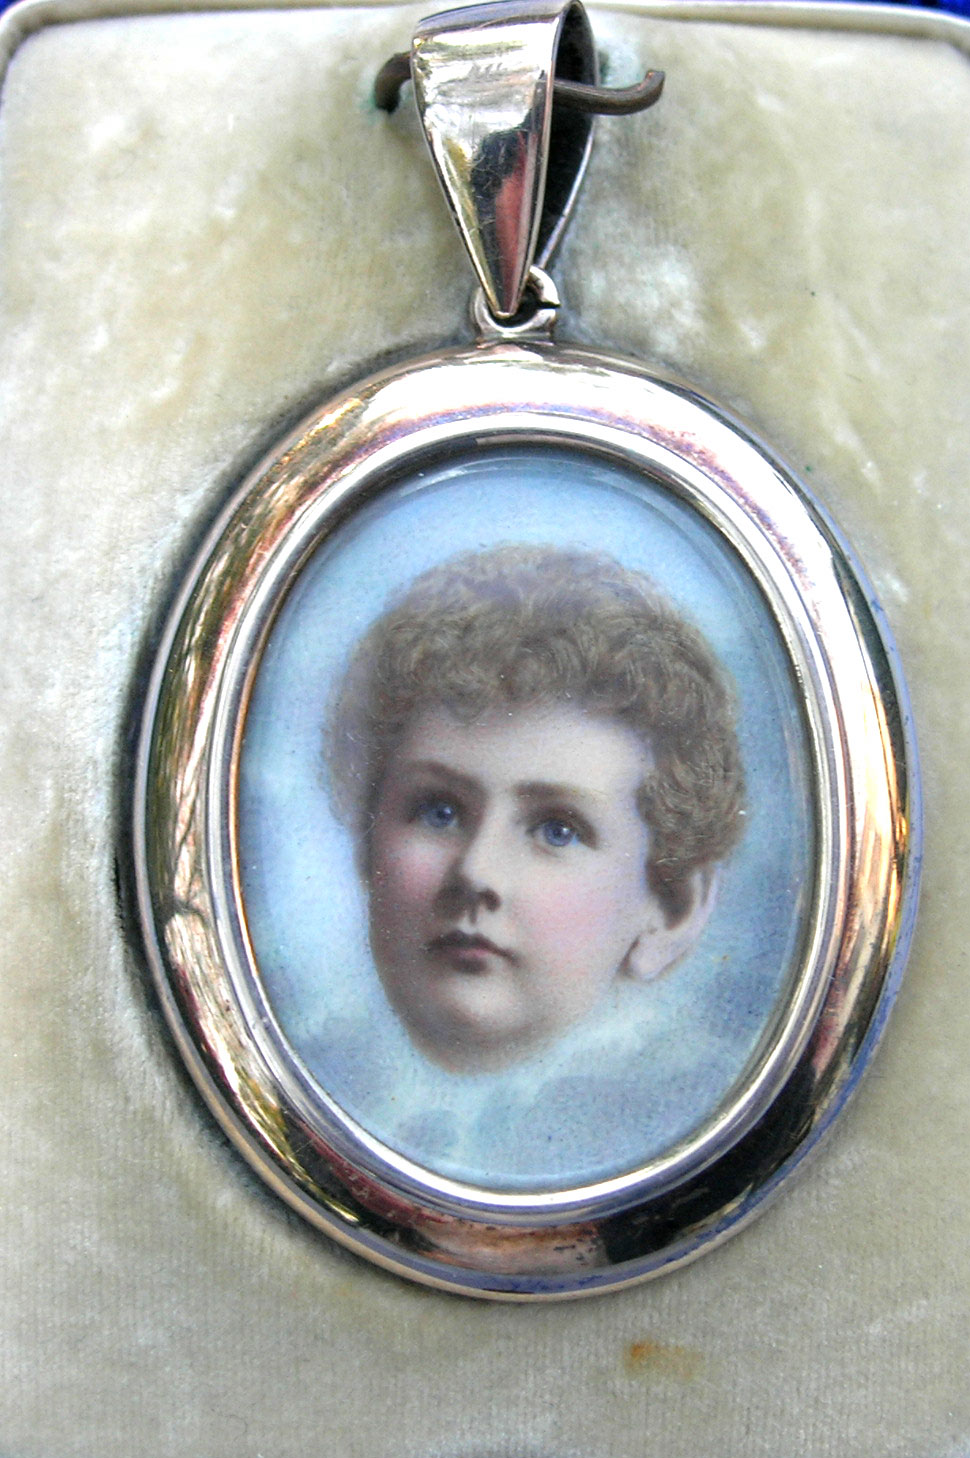 c.1910 child's mourning pendant